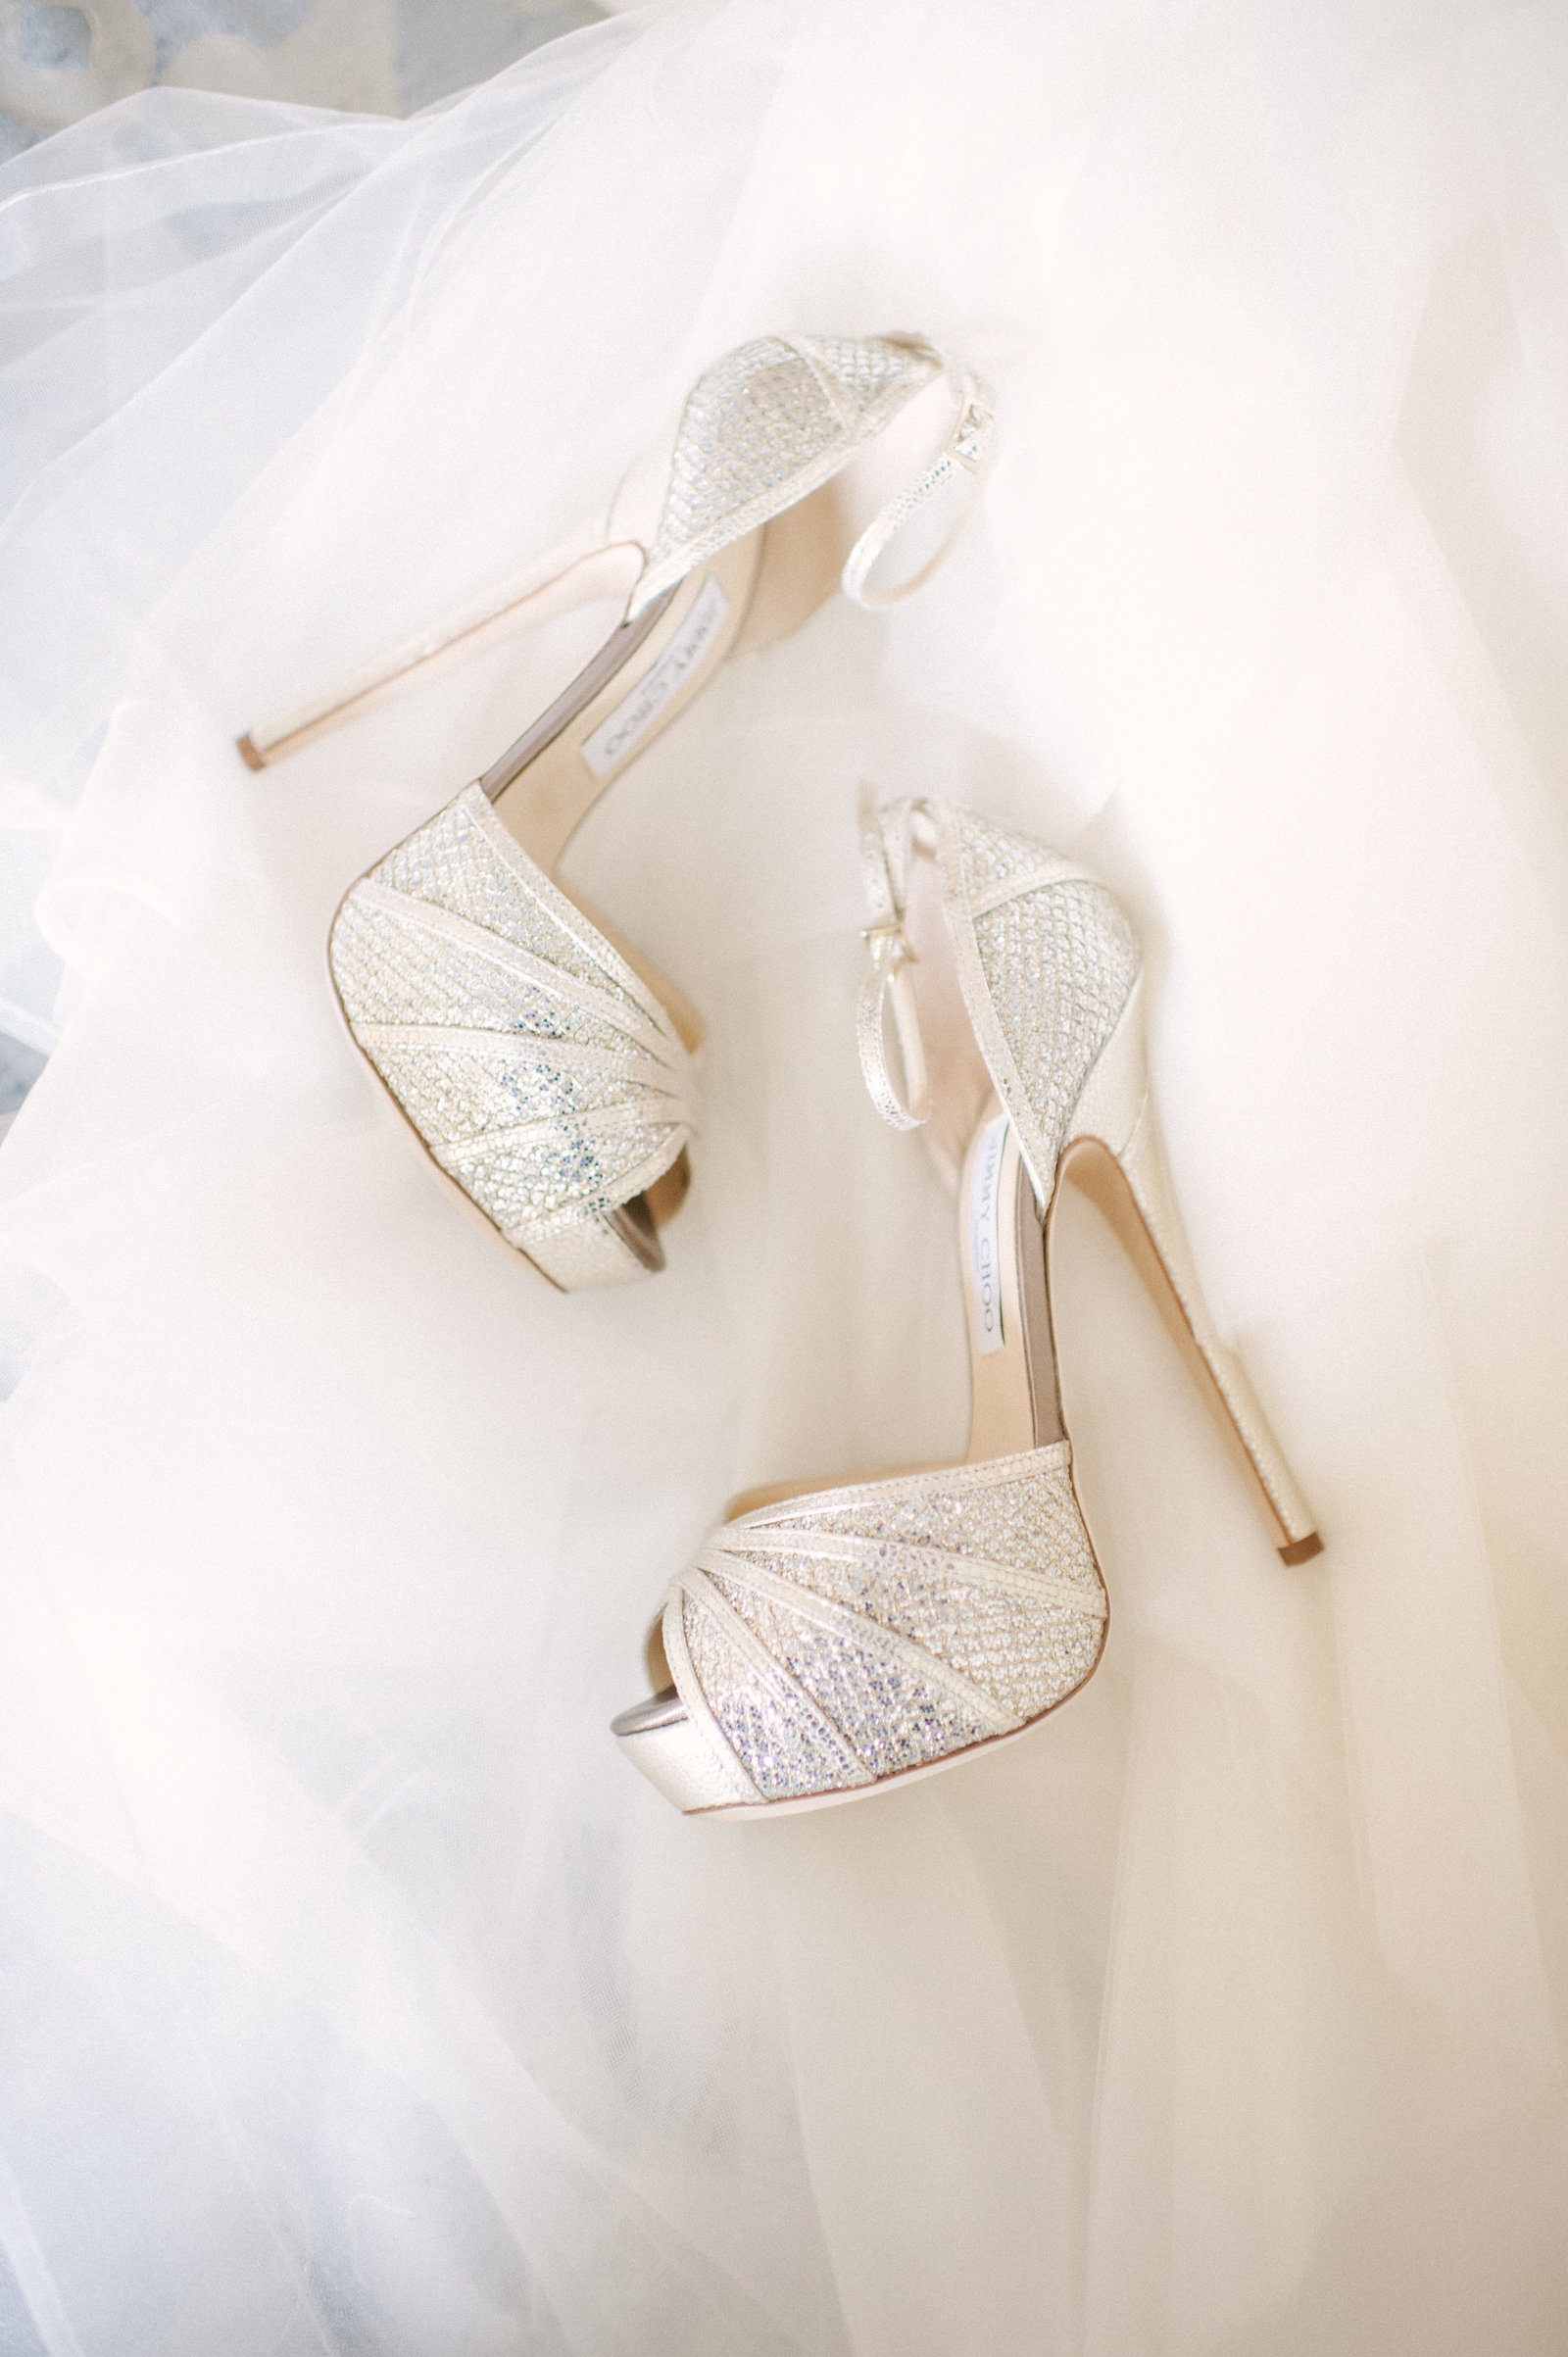 ashford estate wedding, Jimmy choo